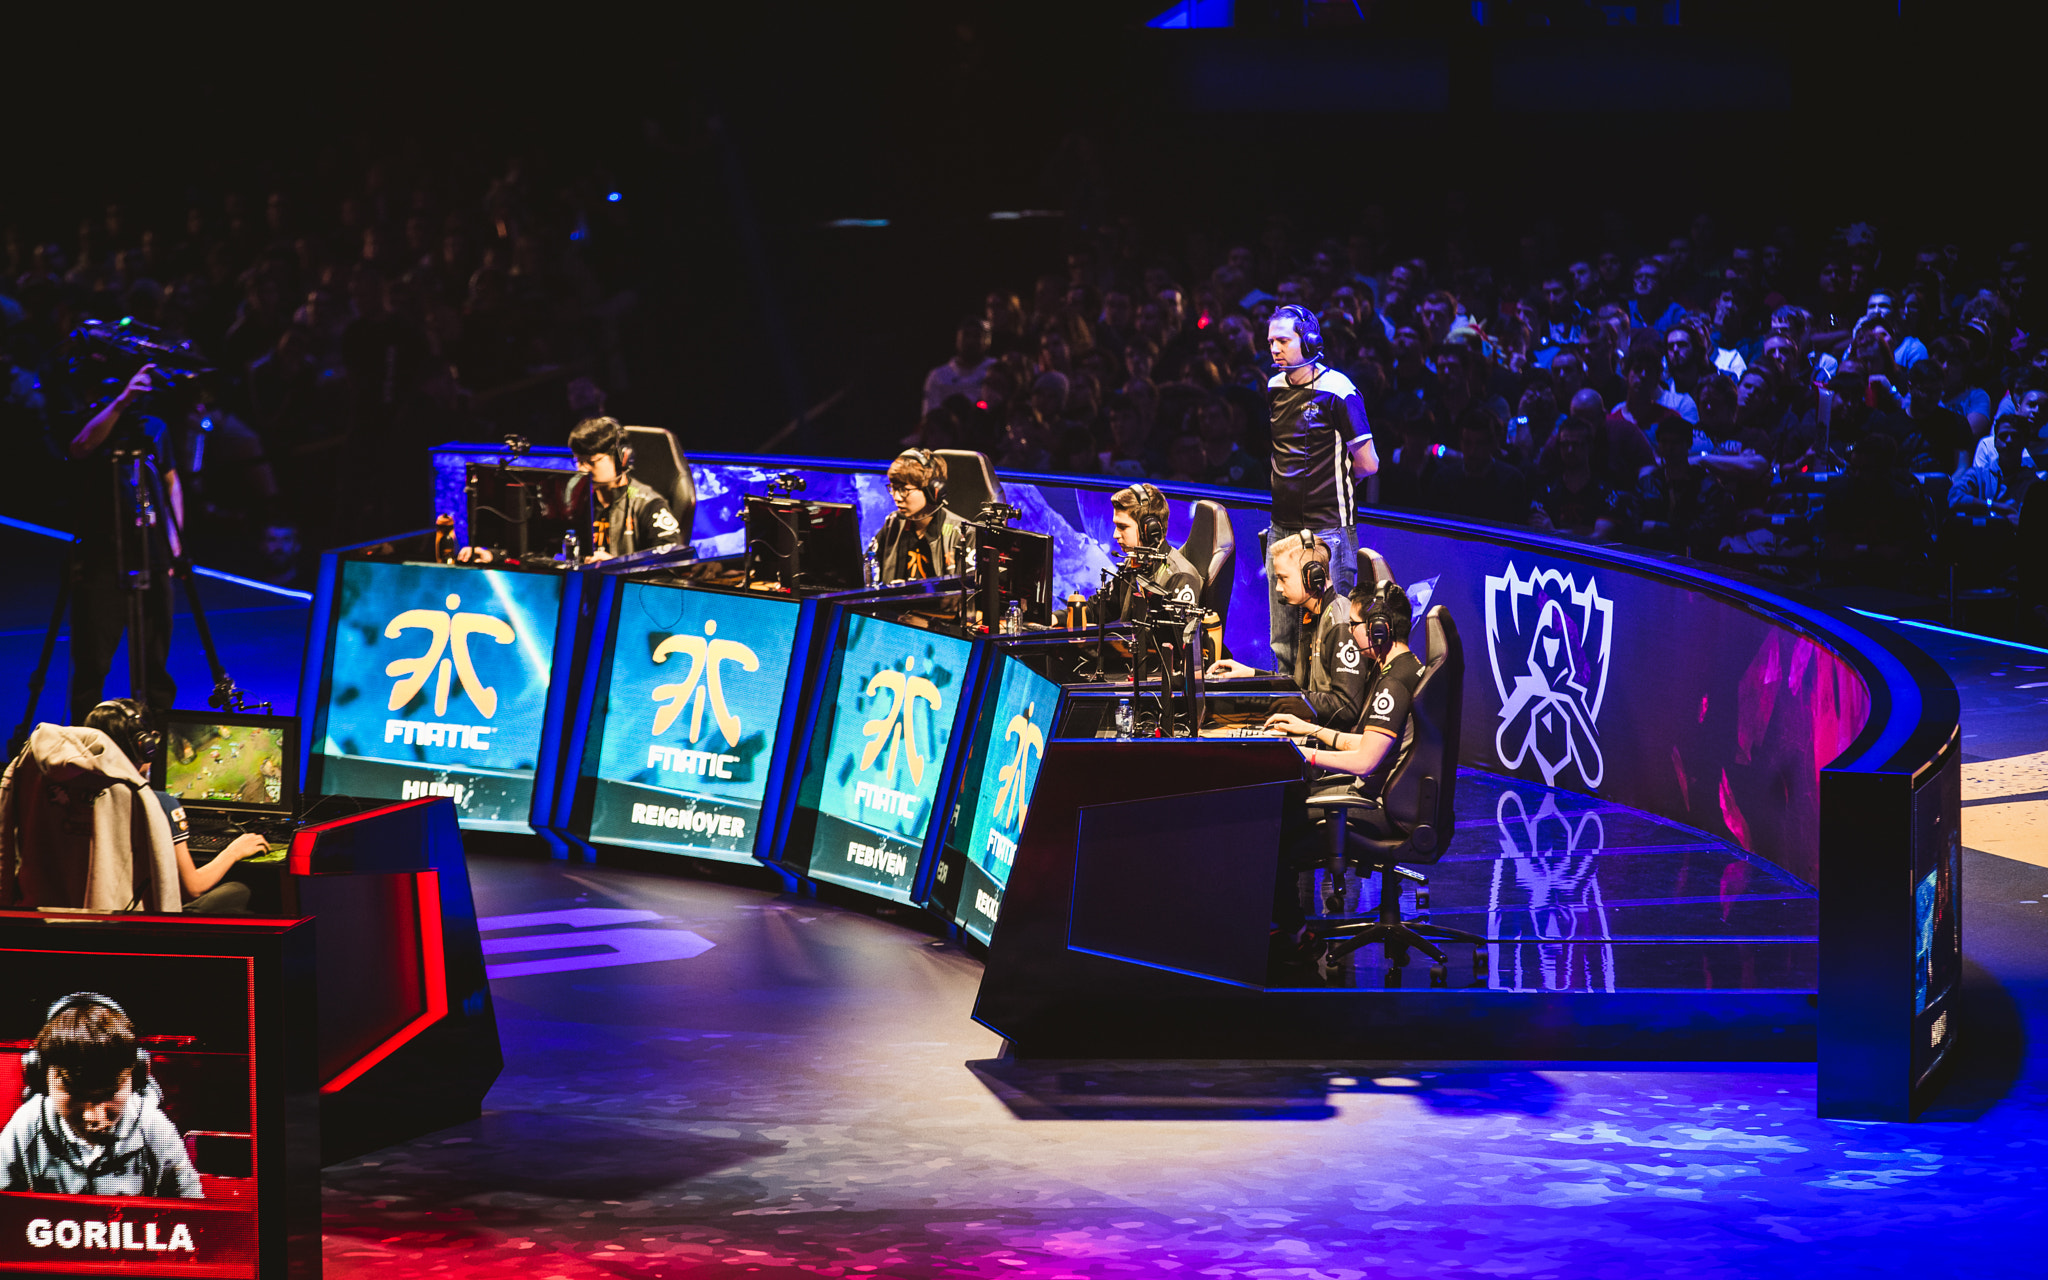 File:Fnatic vs KOO Tigers - 2015 League of Legends (1cun6961).jpg -  Wikimedia Commons